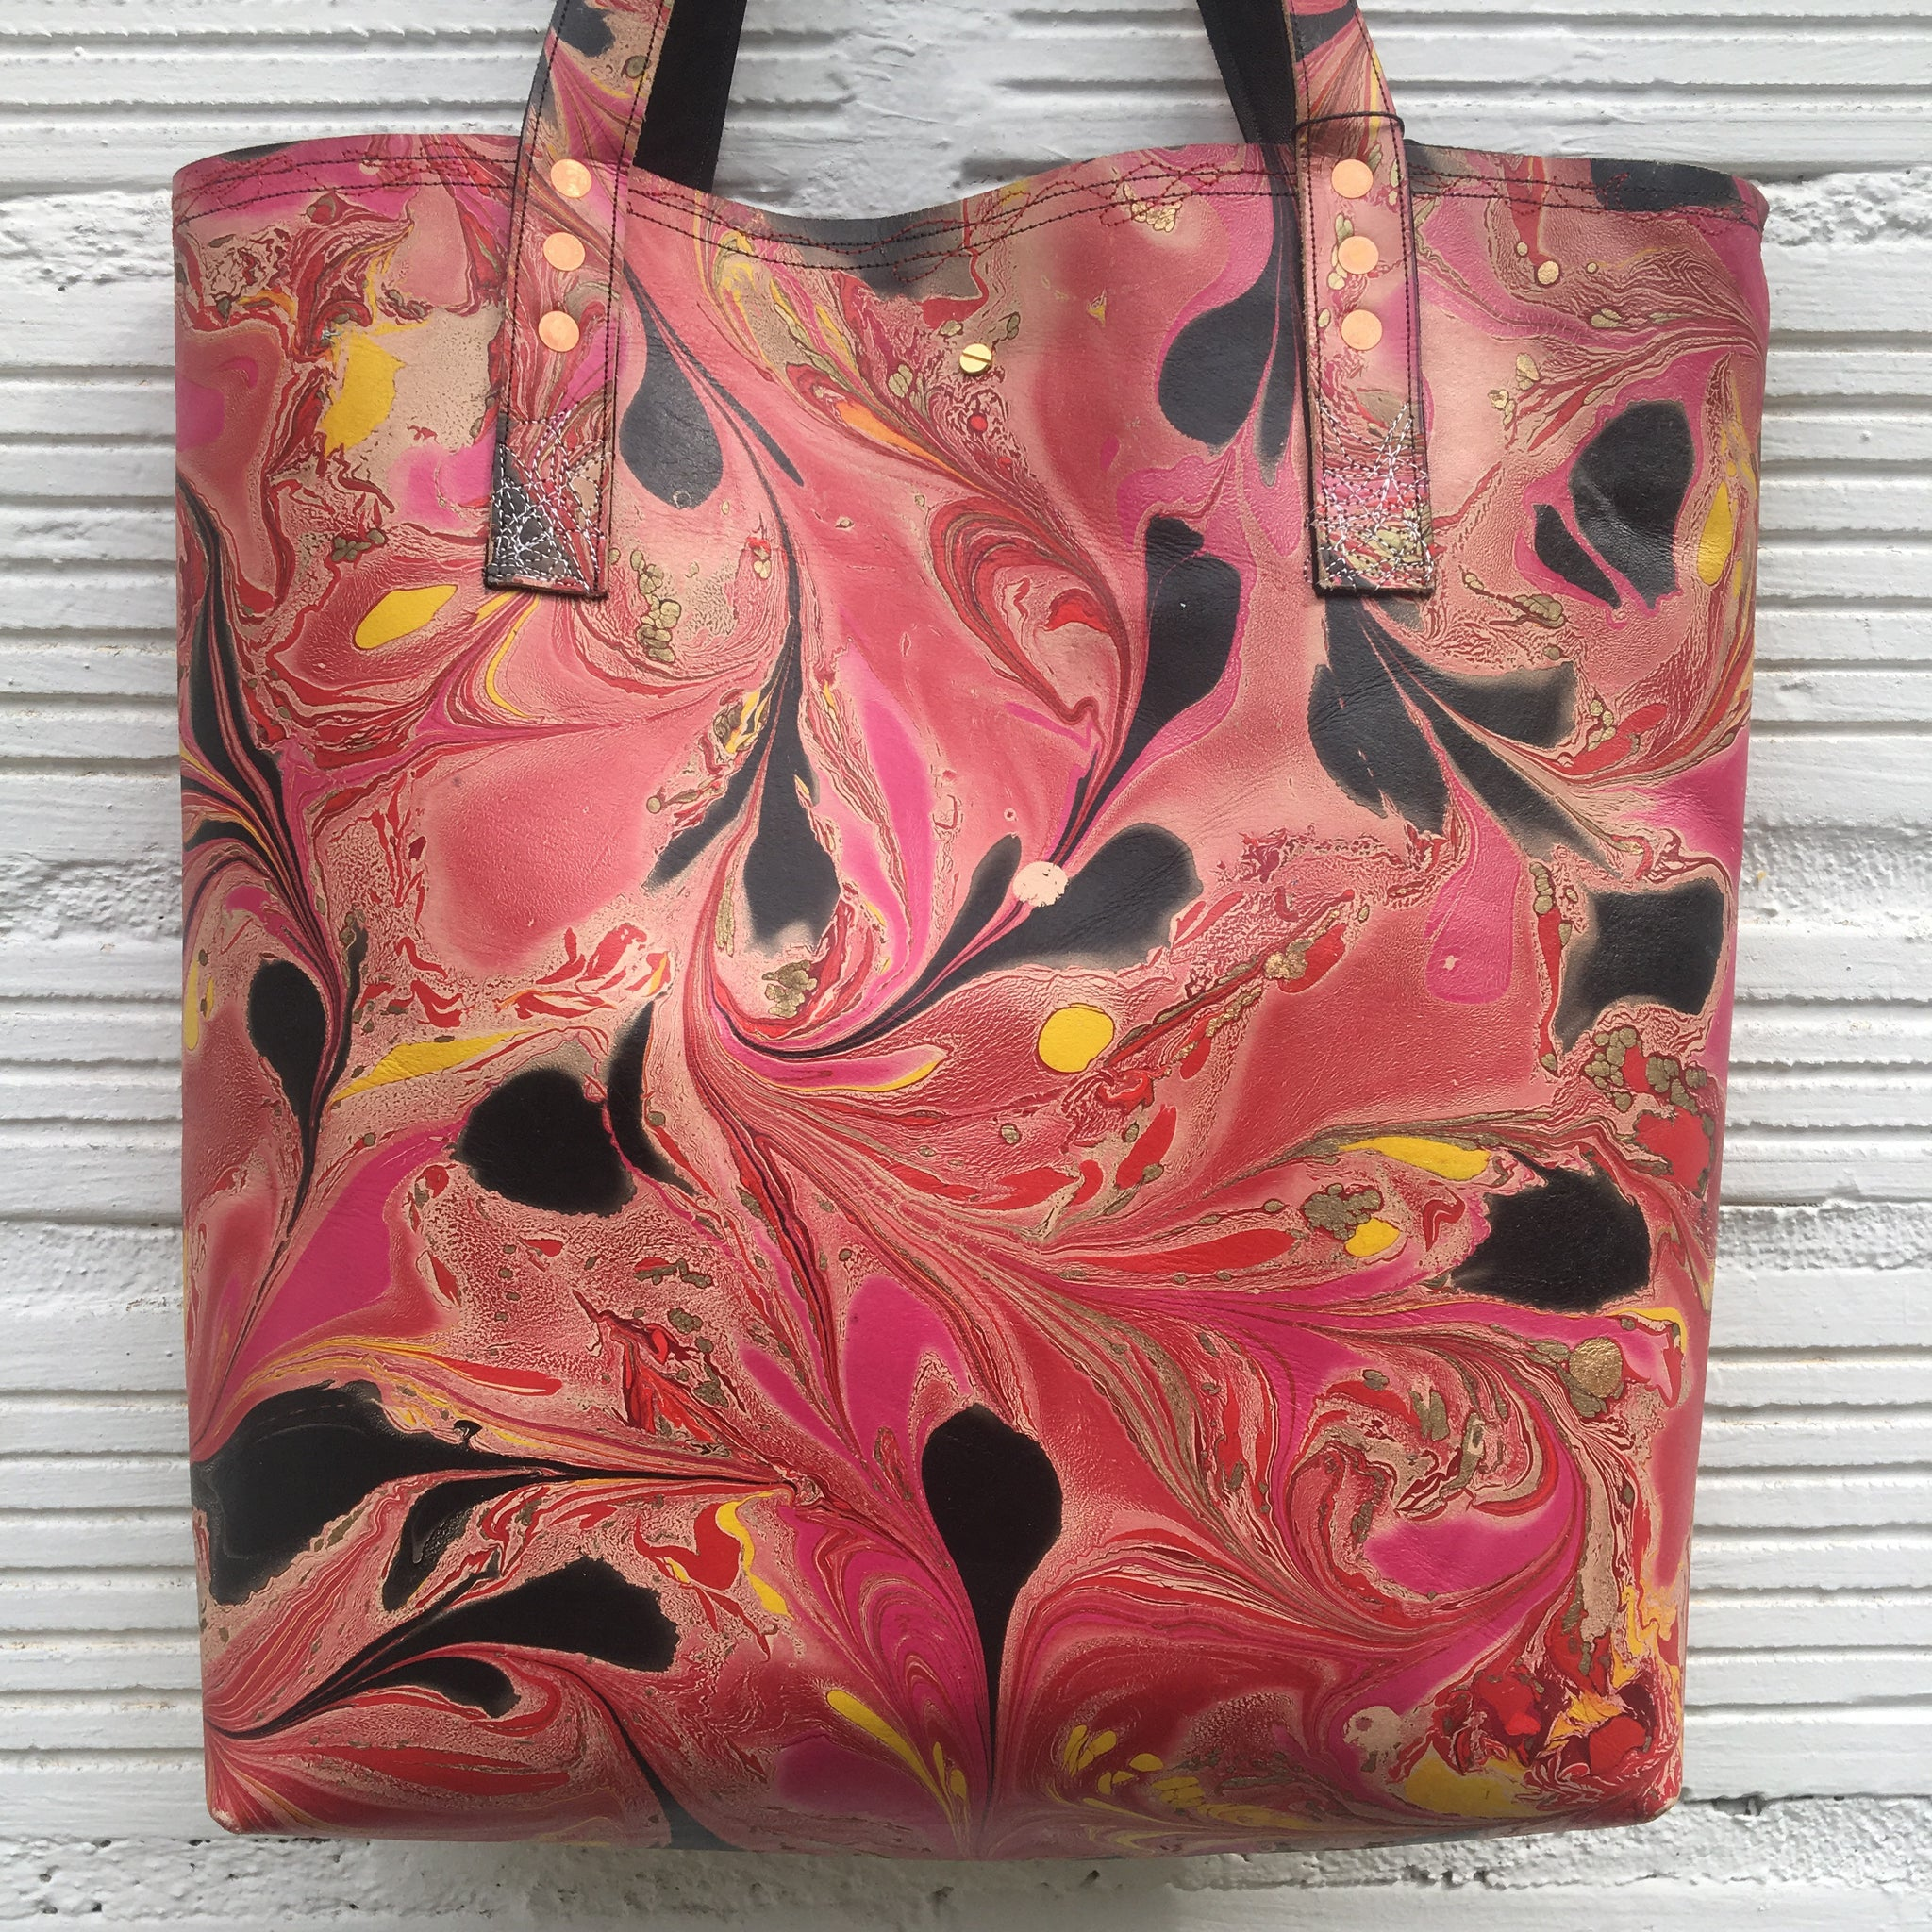 Hot Pink Large Tote - No One Alike